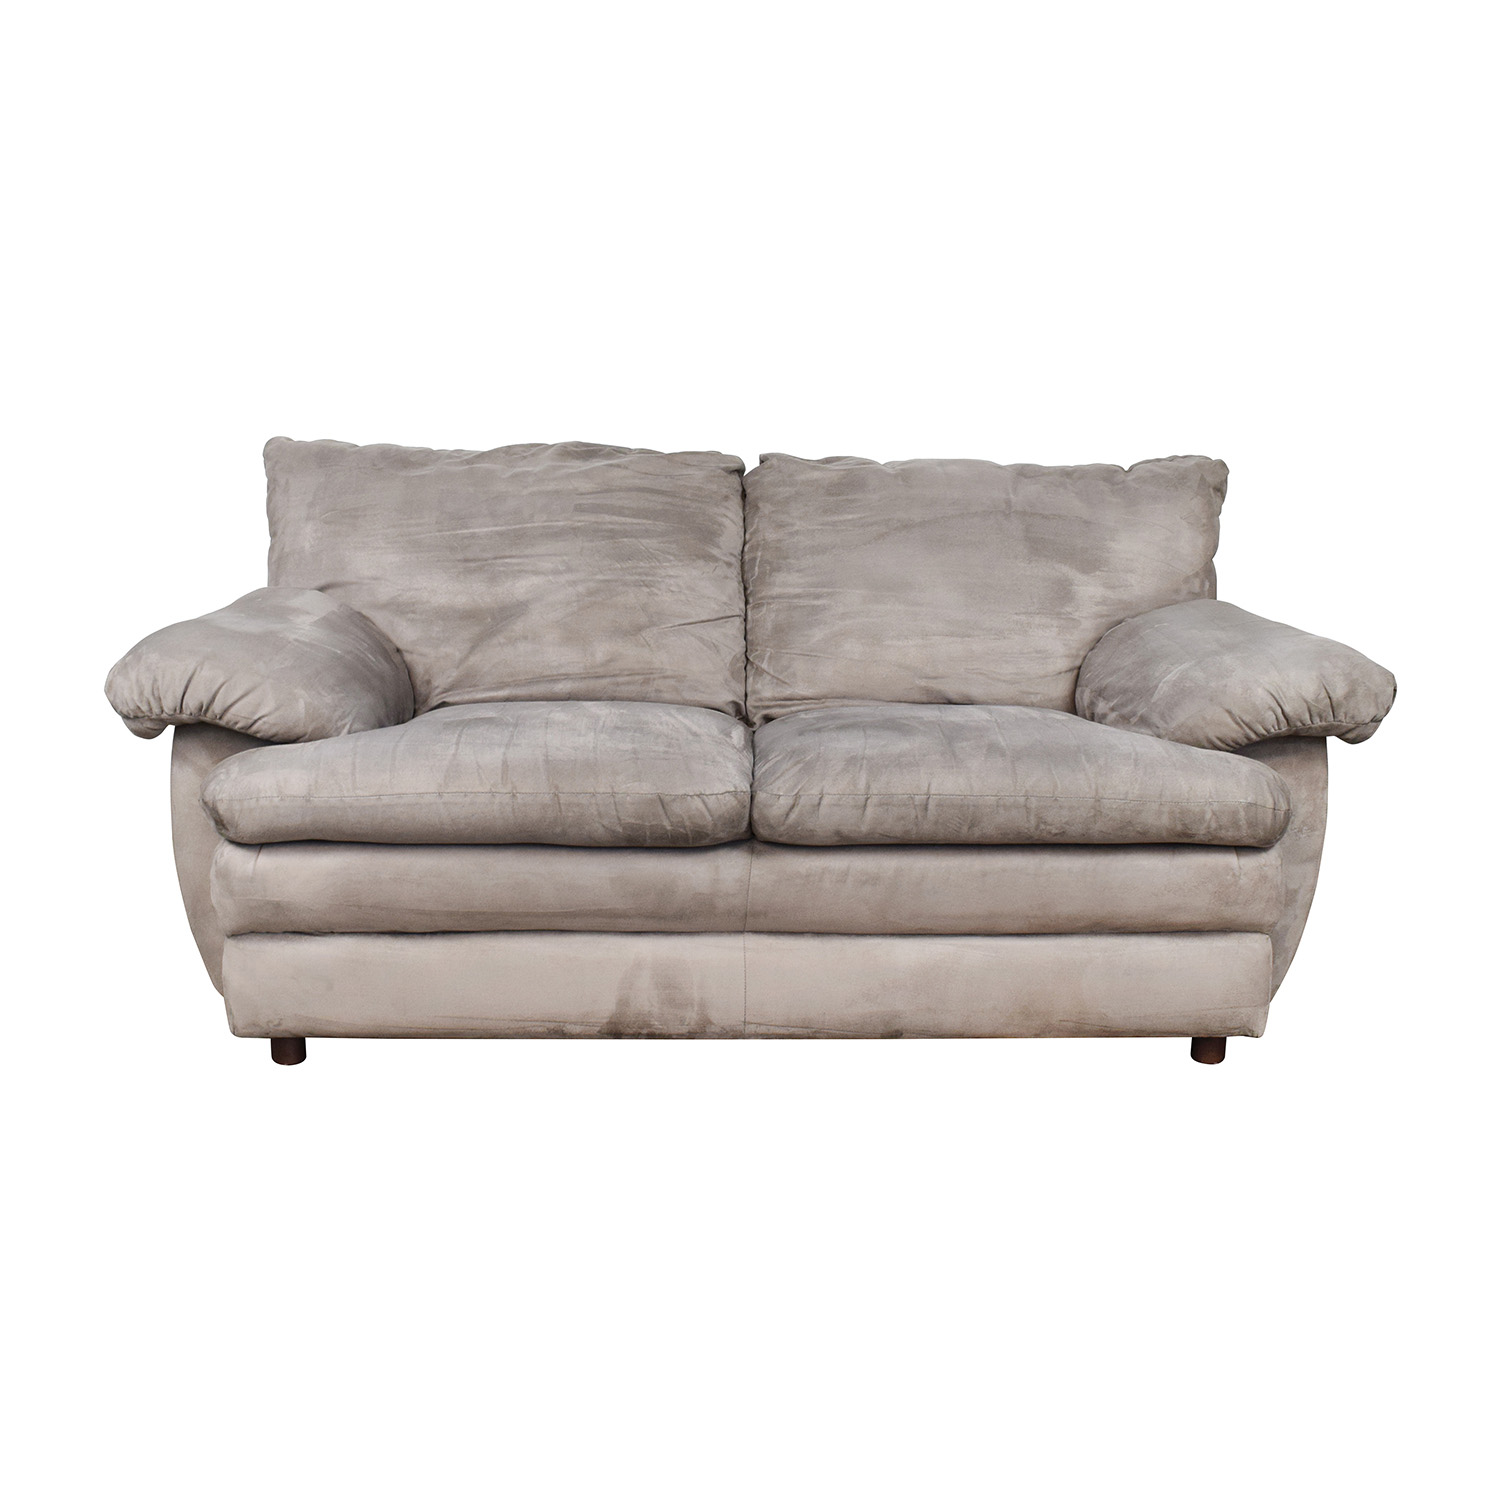 Microfiber Grey Couch for sale